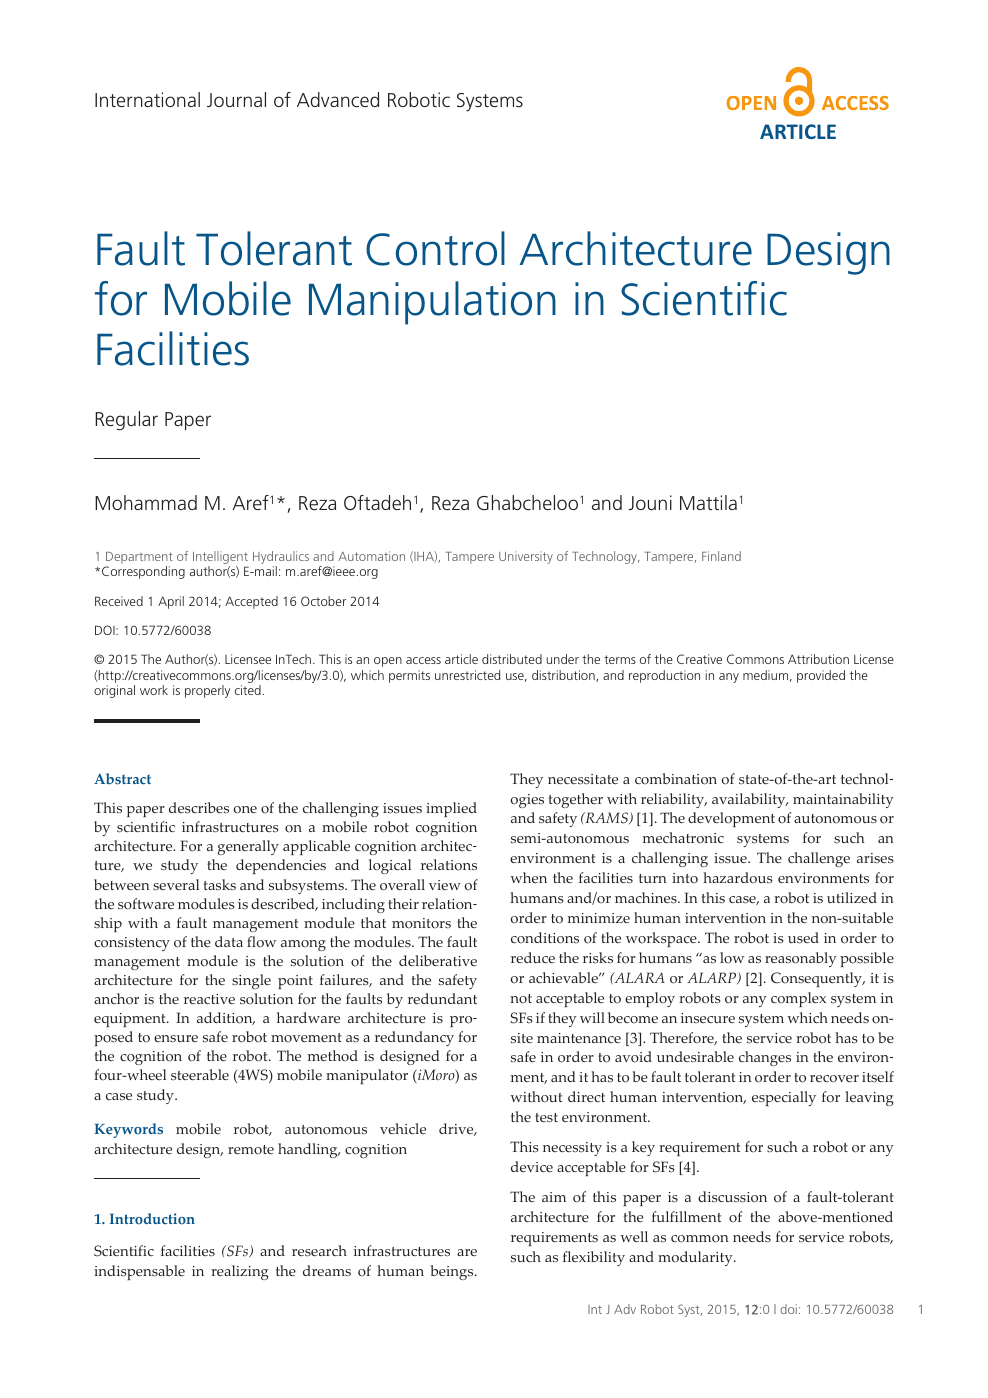 Fault Tolerant Control Architecture Design for Mobile